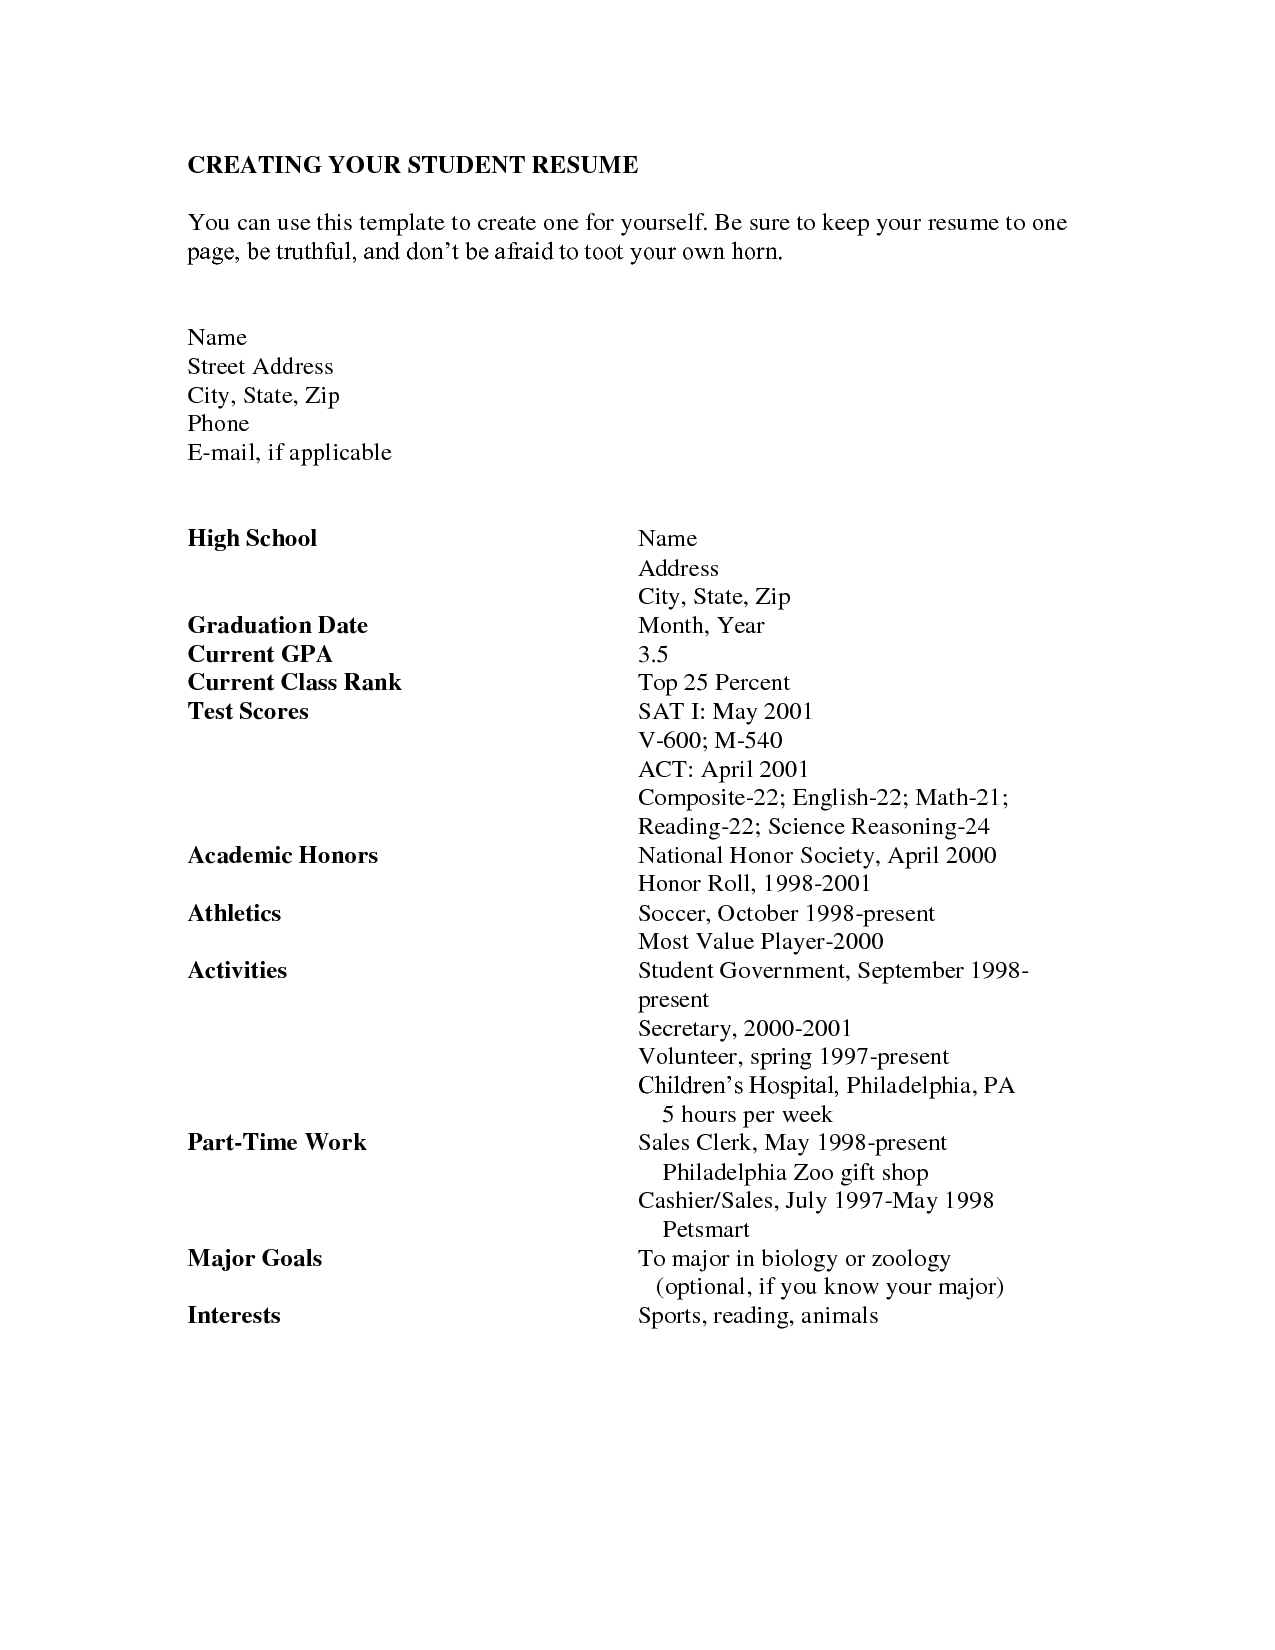 [High School Student Data Sample Resume The Format Job Examples For Highschool  Students Templates Doc] Warning: Invalid Argument Supplied For Foreach() In  ...  How To Make A Resume As A Highschool Student